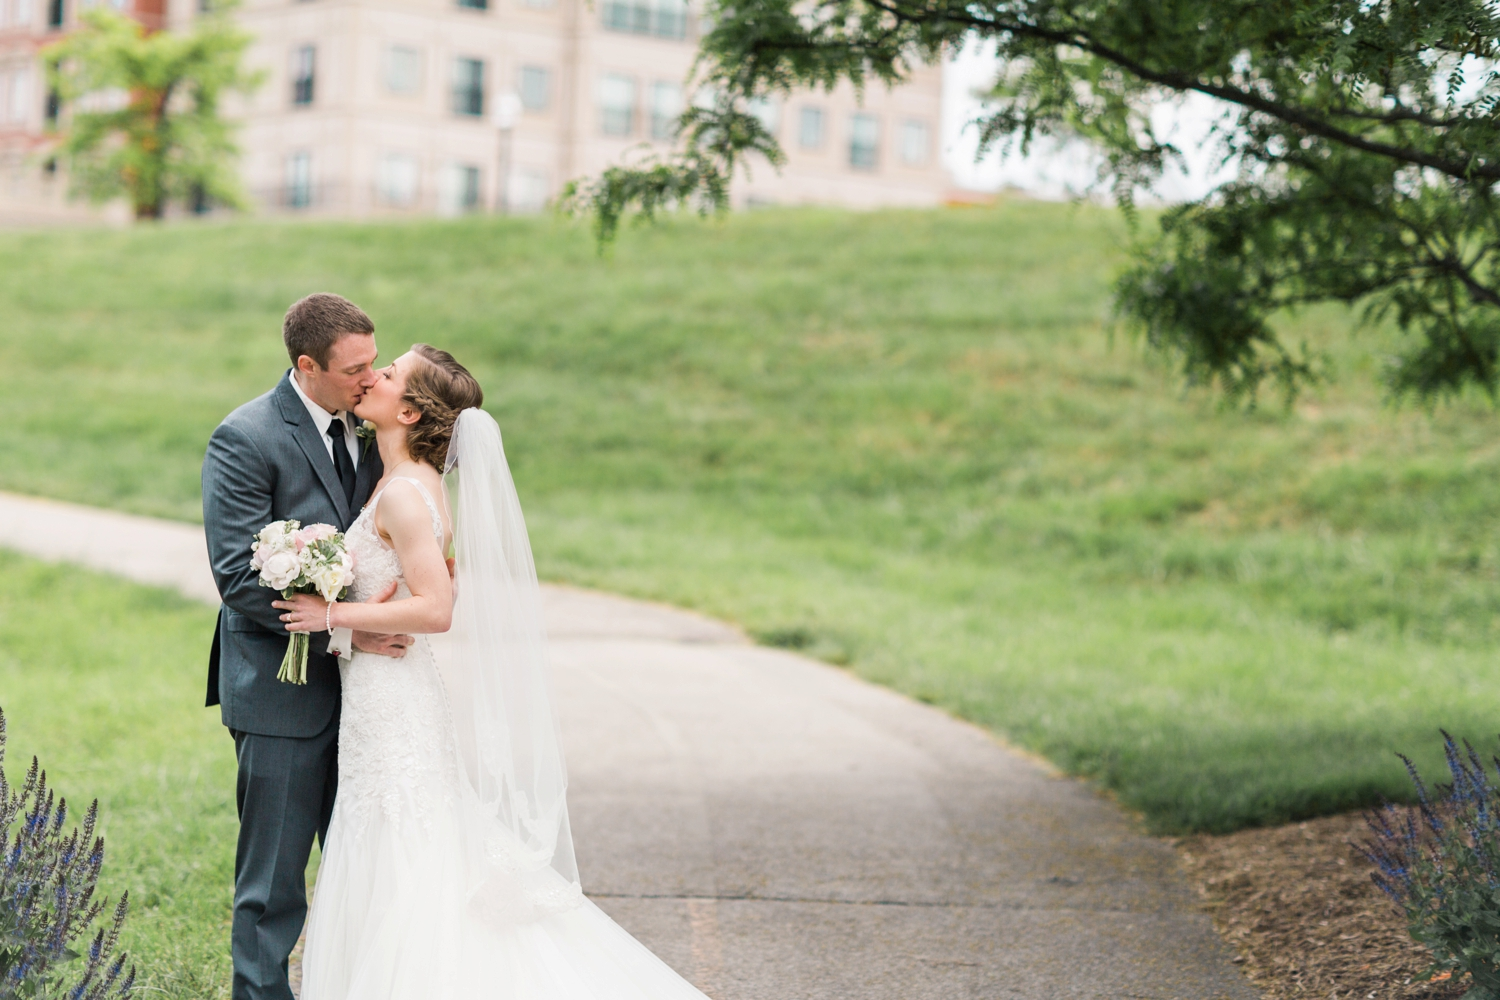 Indiana_Wedding_Photography_Chloe_Luka_Photography_6780.jpg